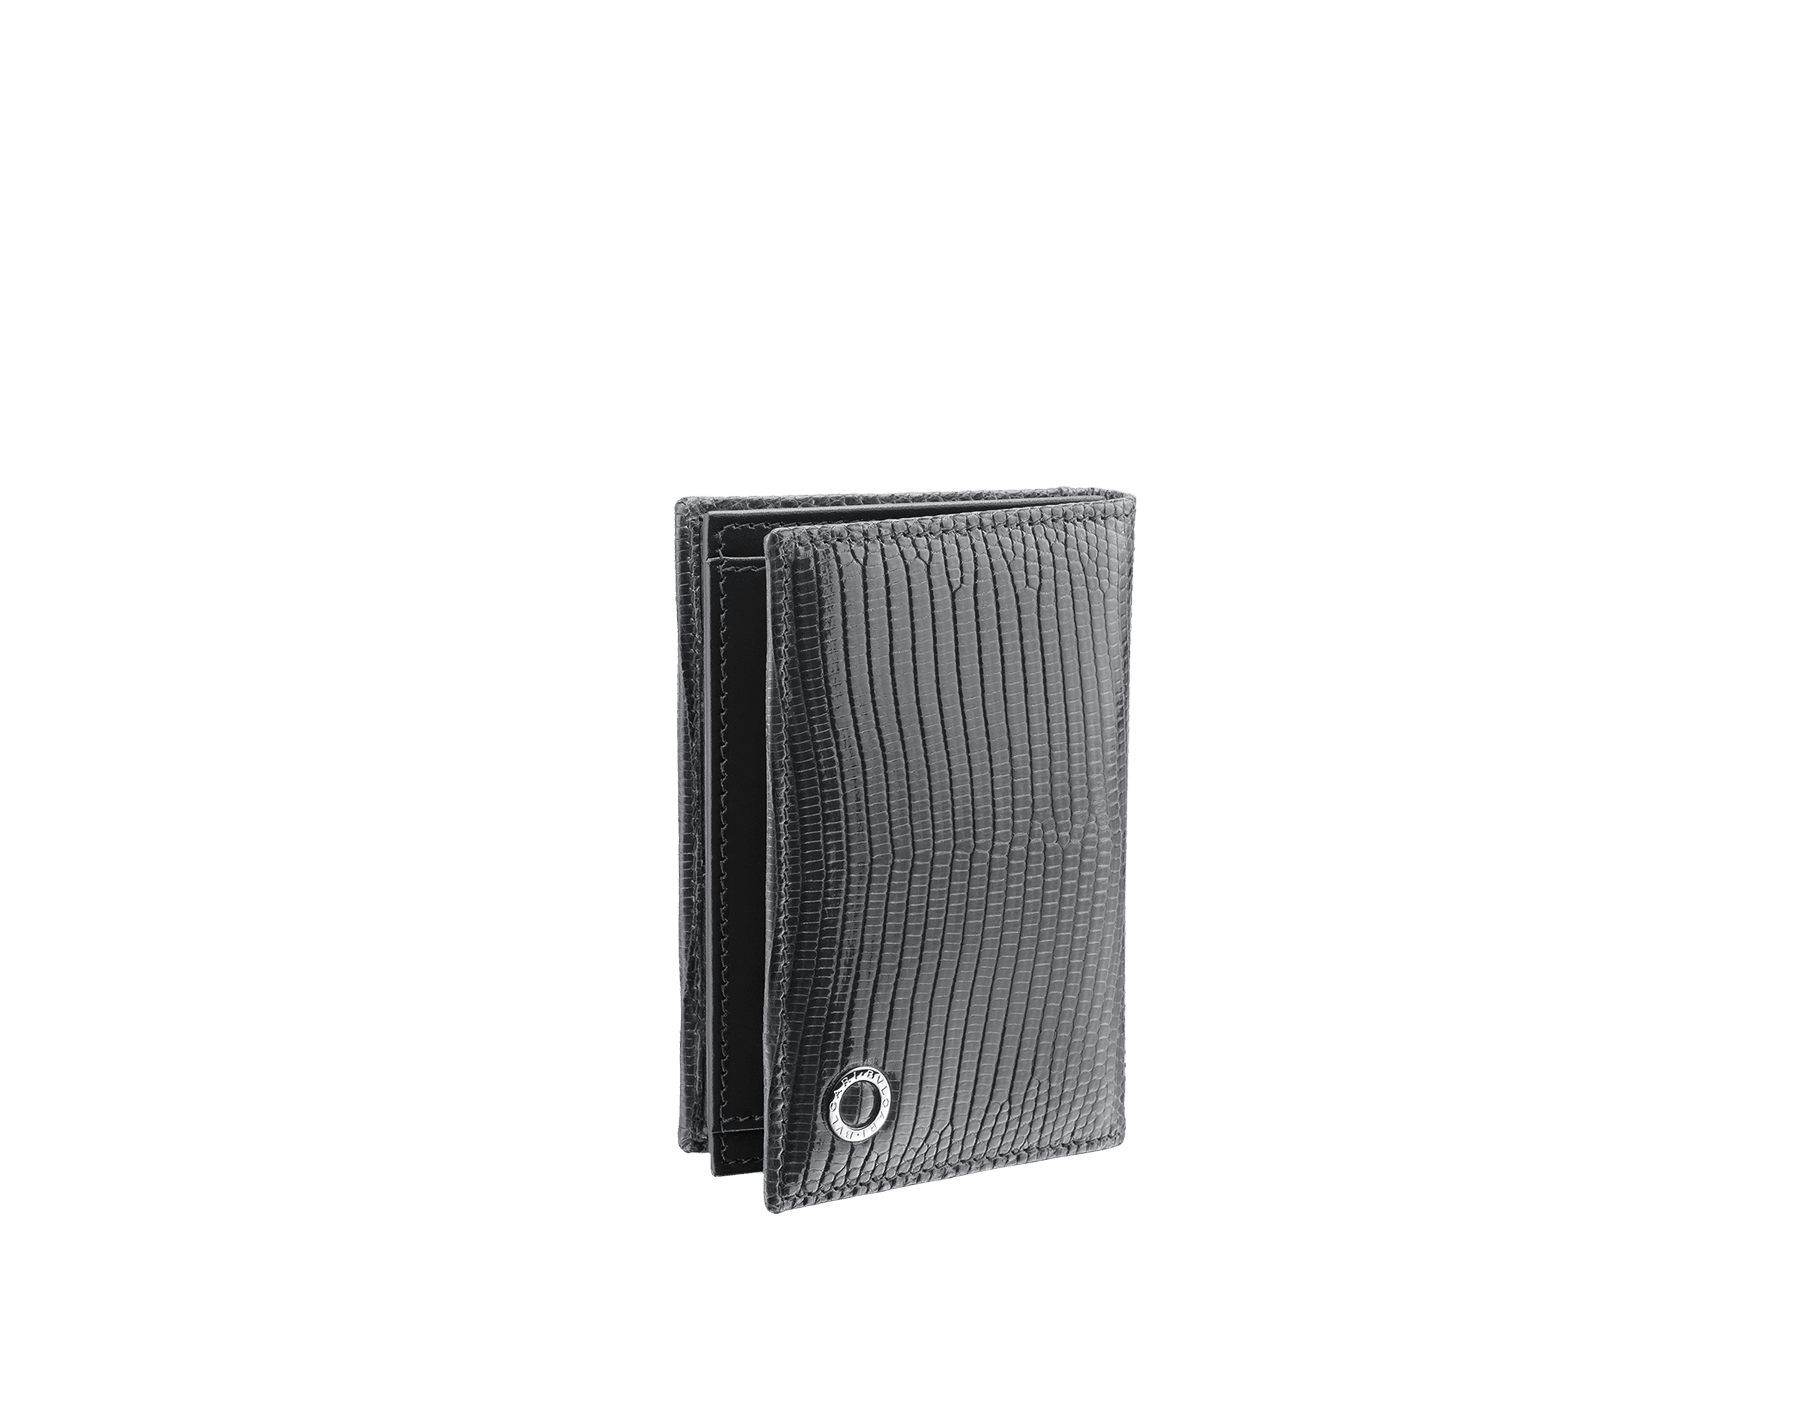 """BVLGARI BVLGARI"" business-card holder in shiny Charcoal Diamond grey lizard skin and black calfskin. Palladium-plated brass embellishment with logo. BBM-BC-HOLD-SIMPLE-sl image 1"